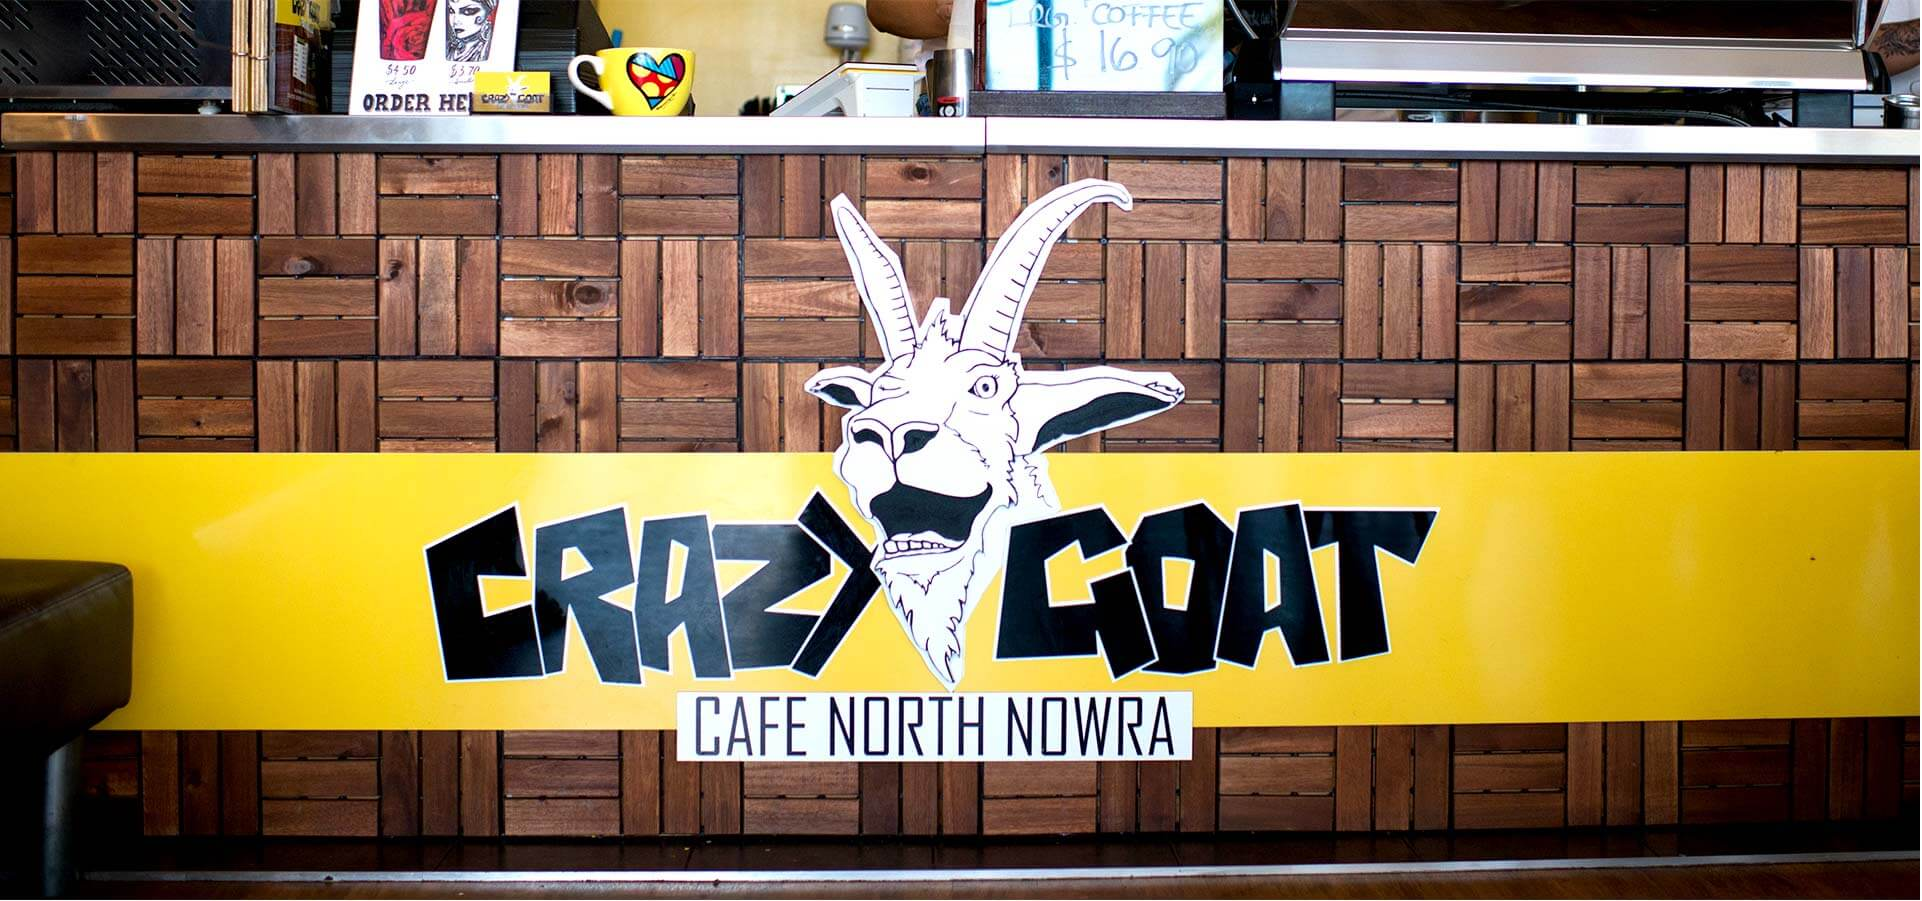 Crazy Goat Front Bench signage